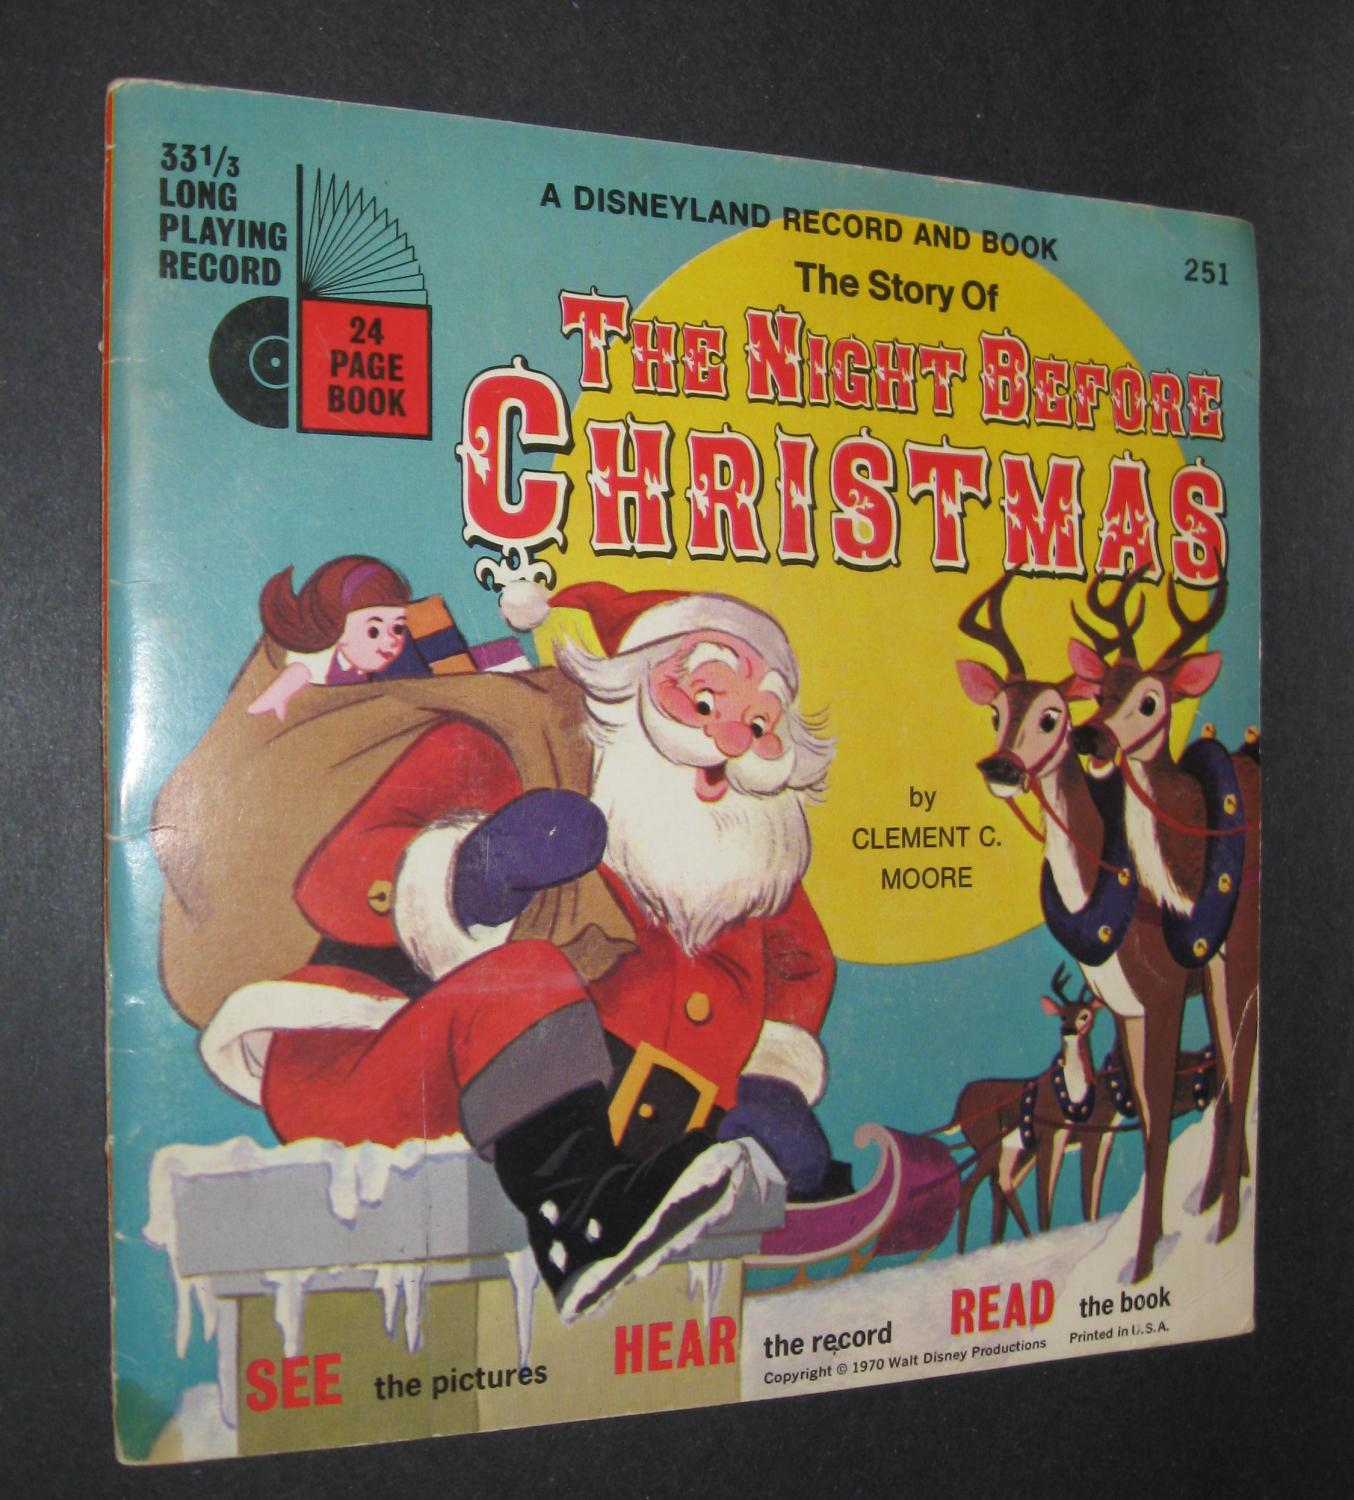 the story of the night before christmas book and record moore clement